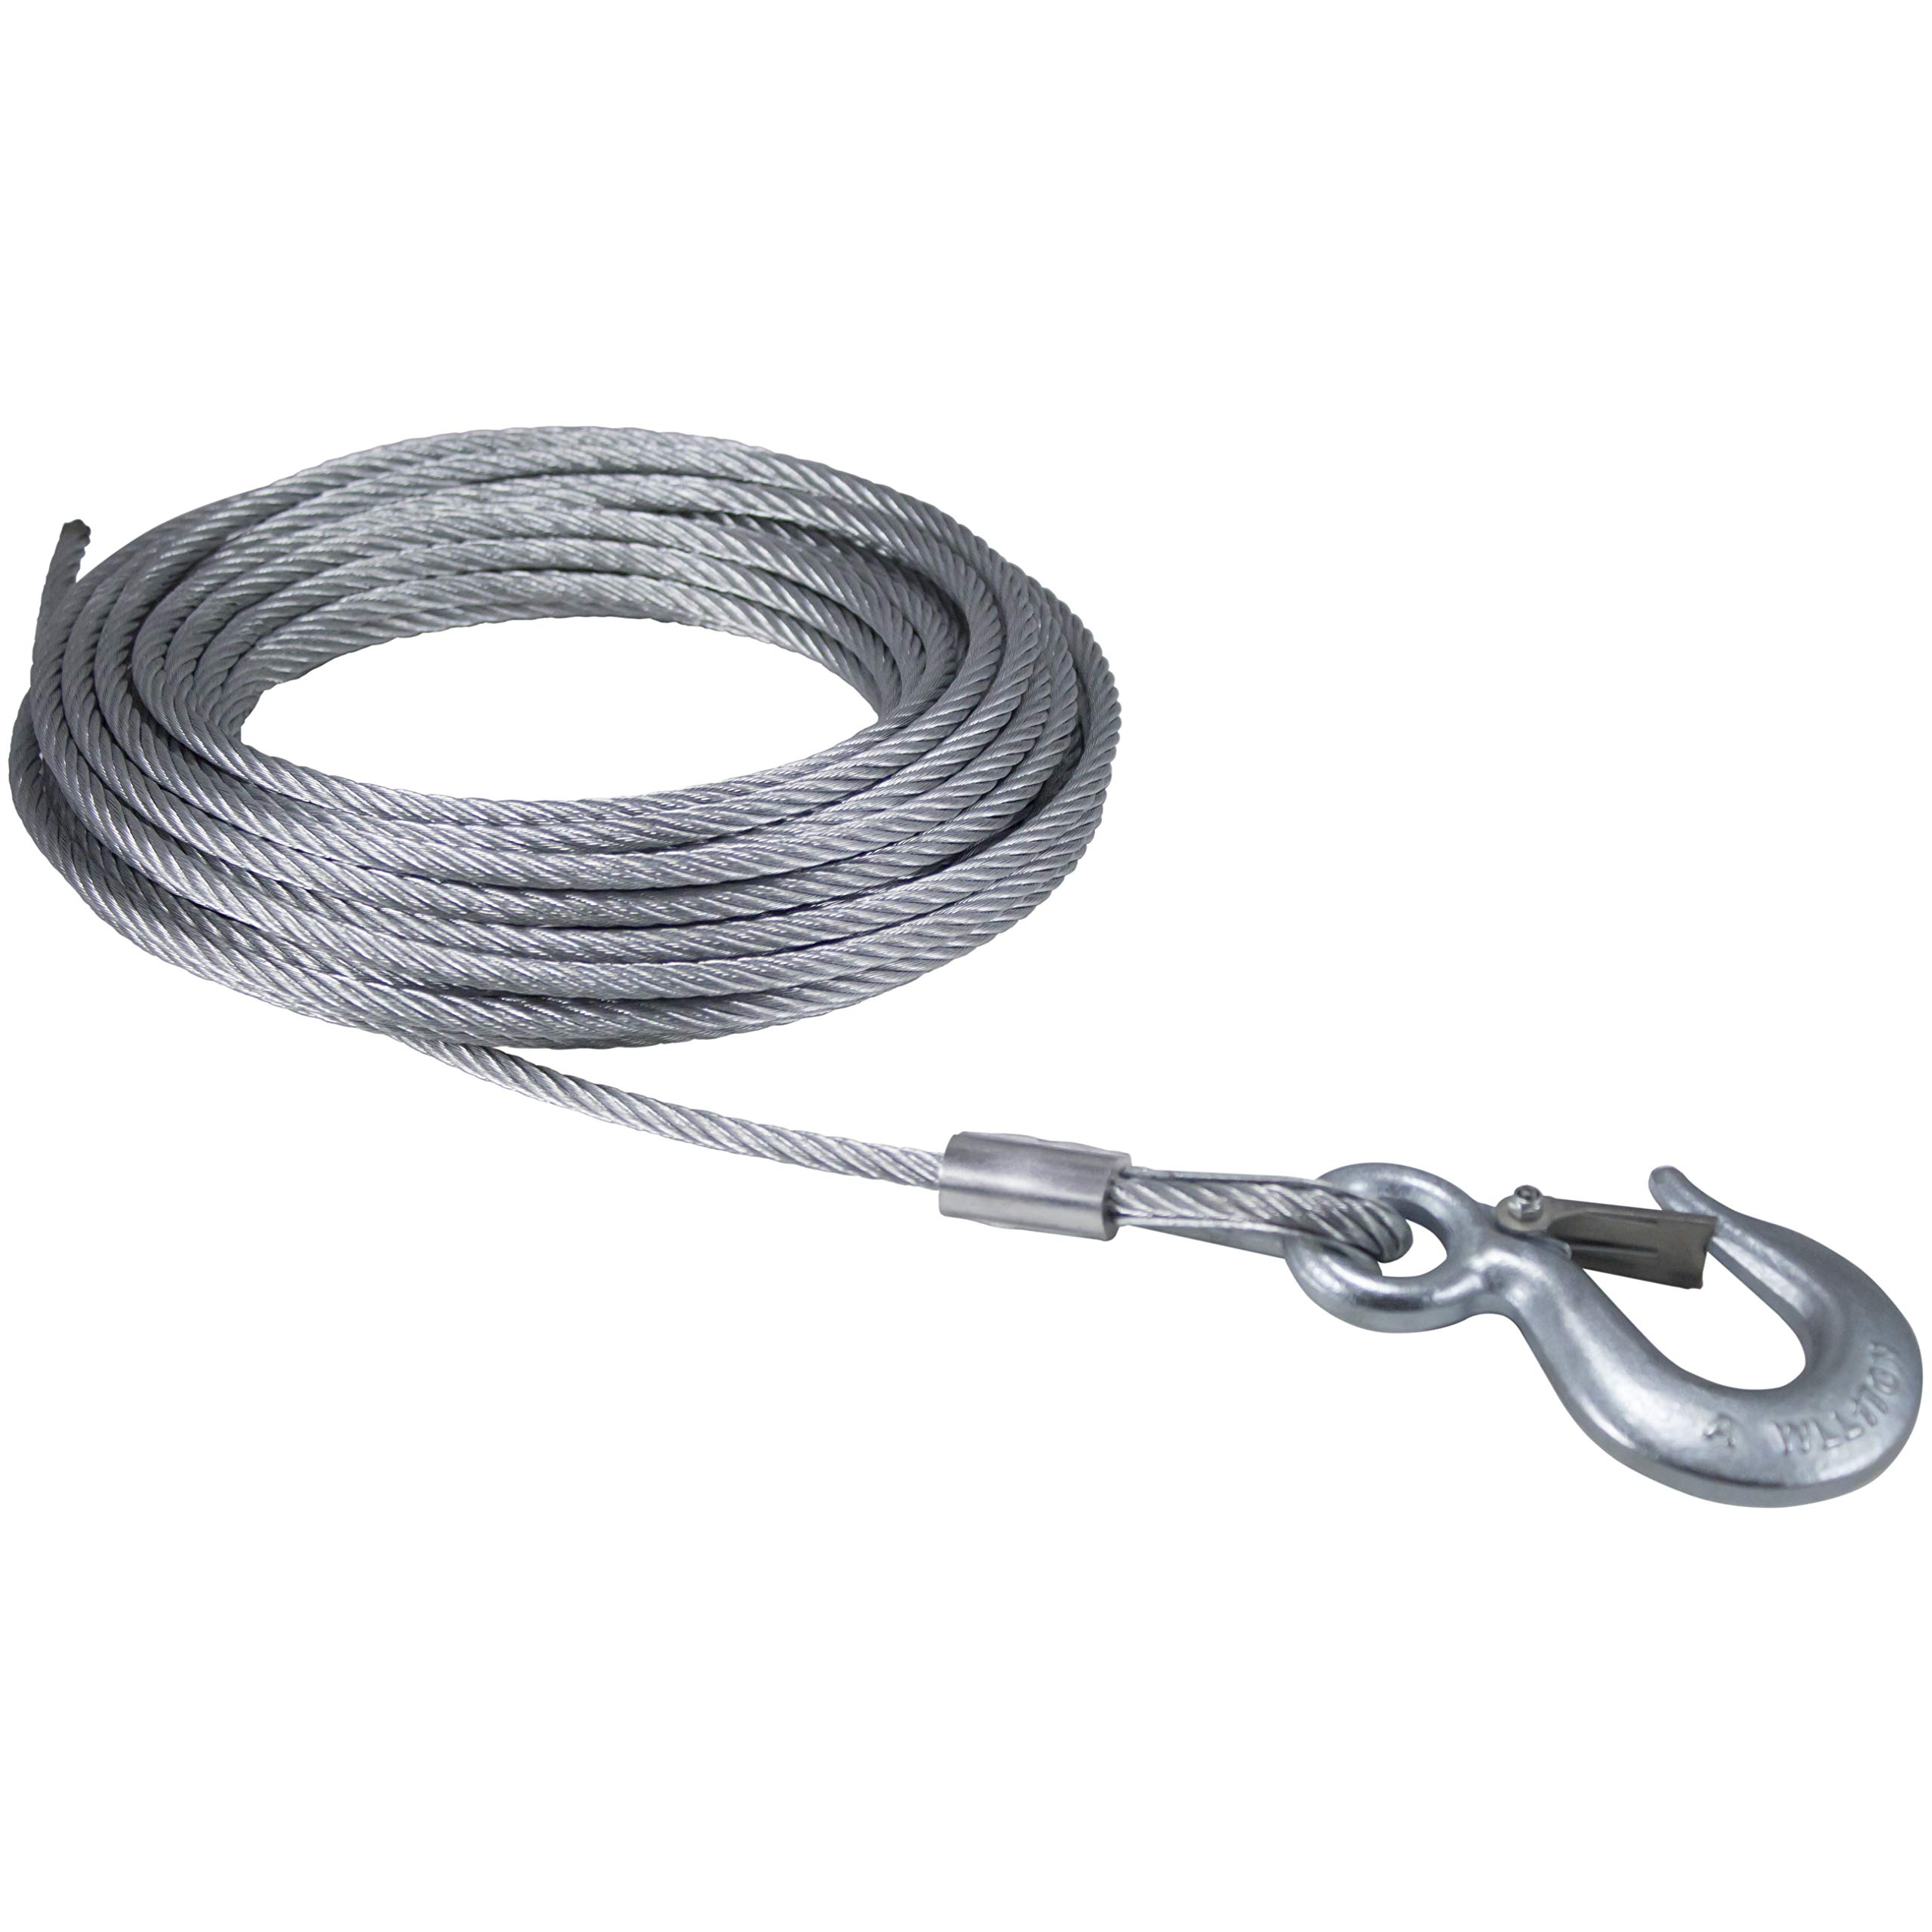 Goldenrod Dutton-Lainson 6524 Cable with Hook 1/4- Inch x 50- Feet